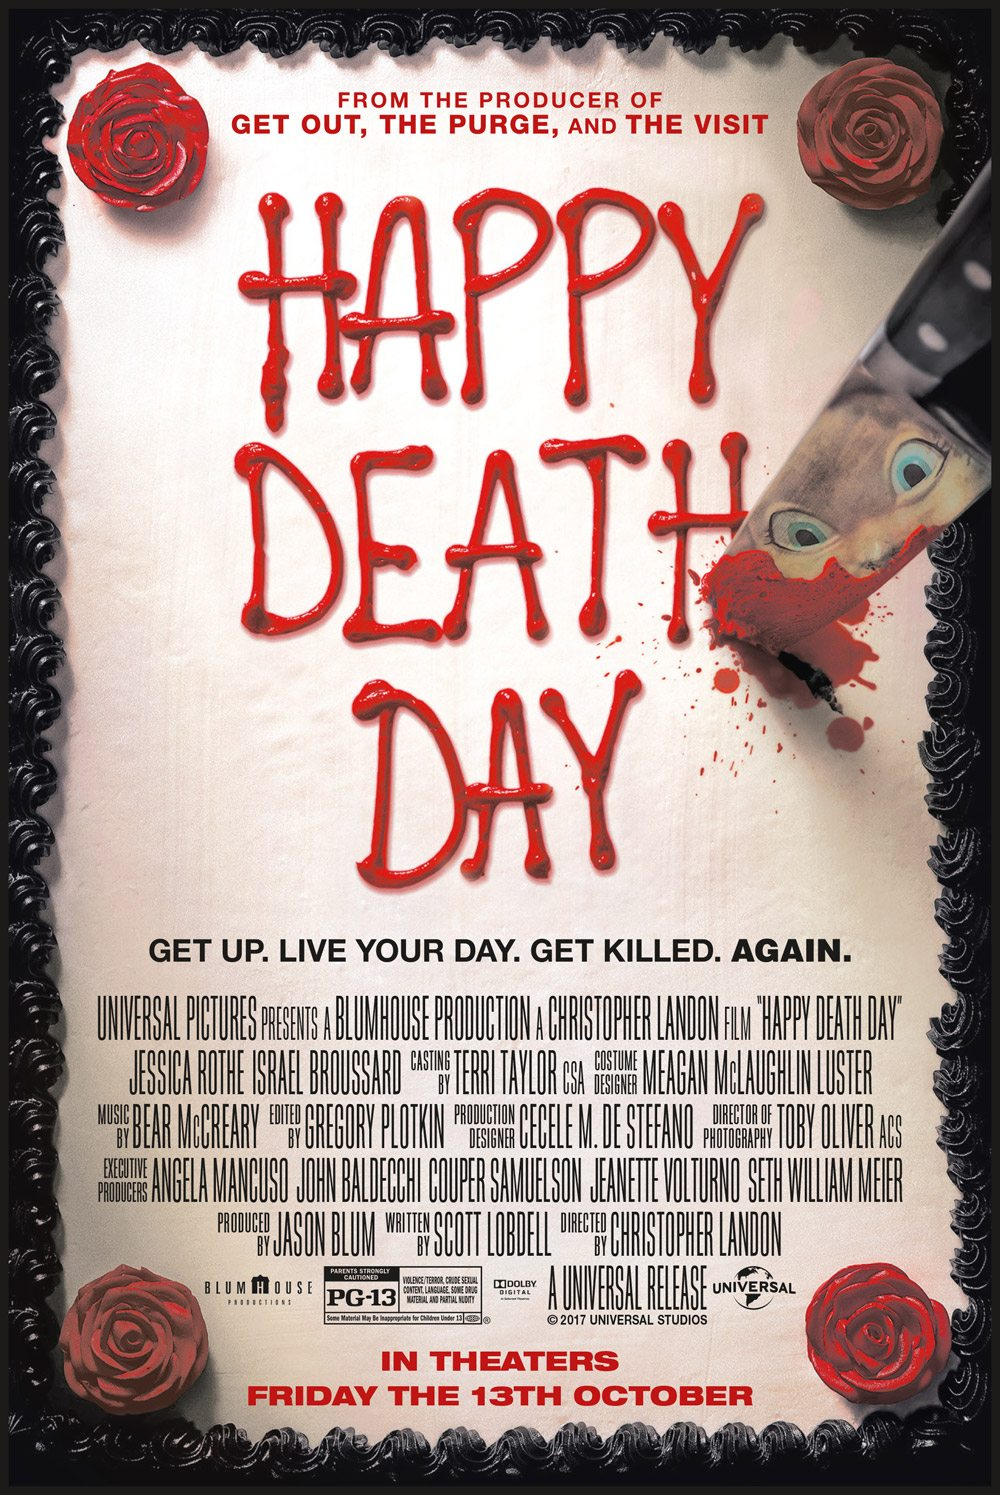 Happy-Death-Day-Poster.jpg